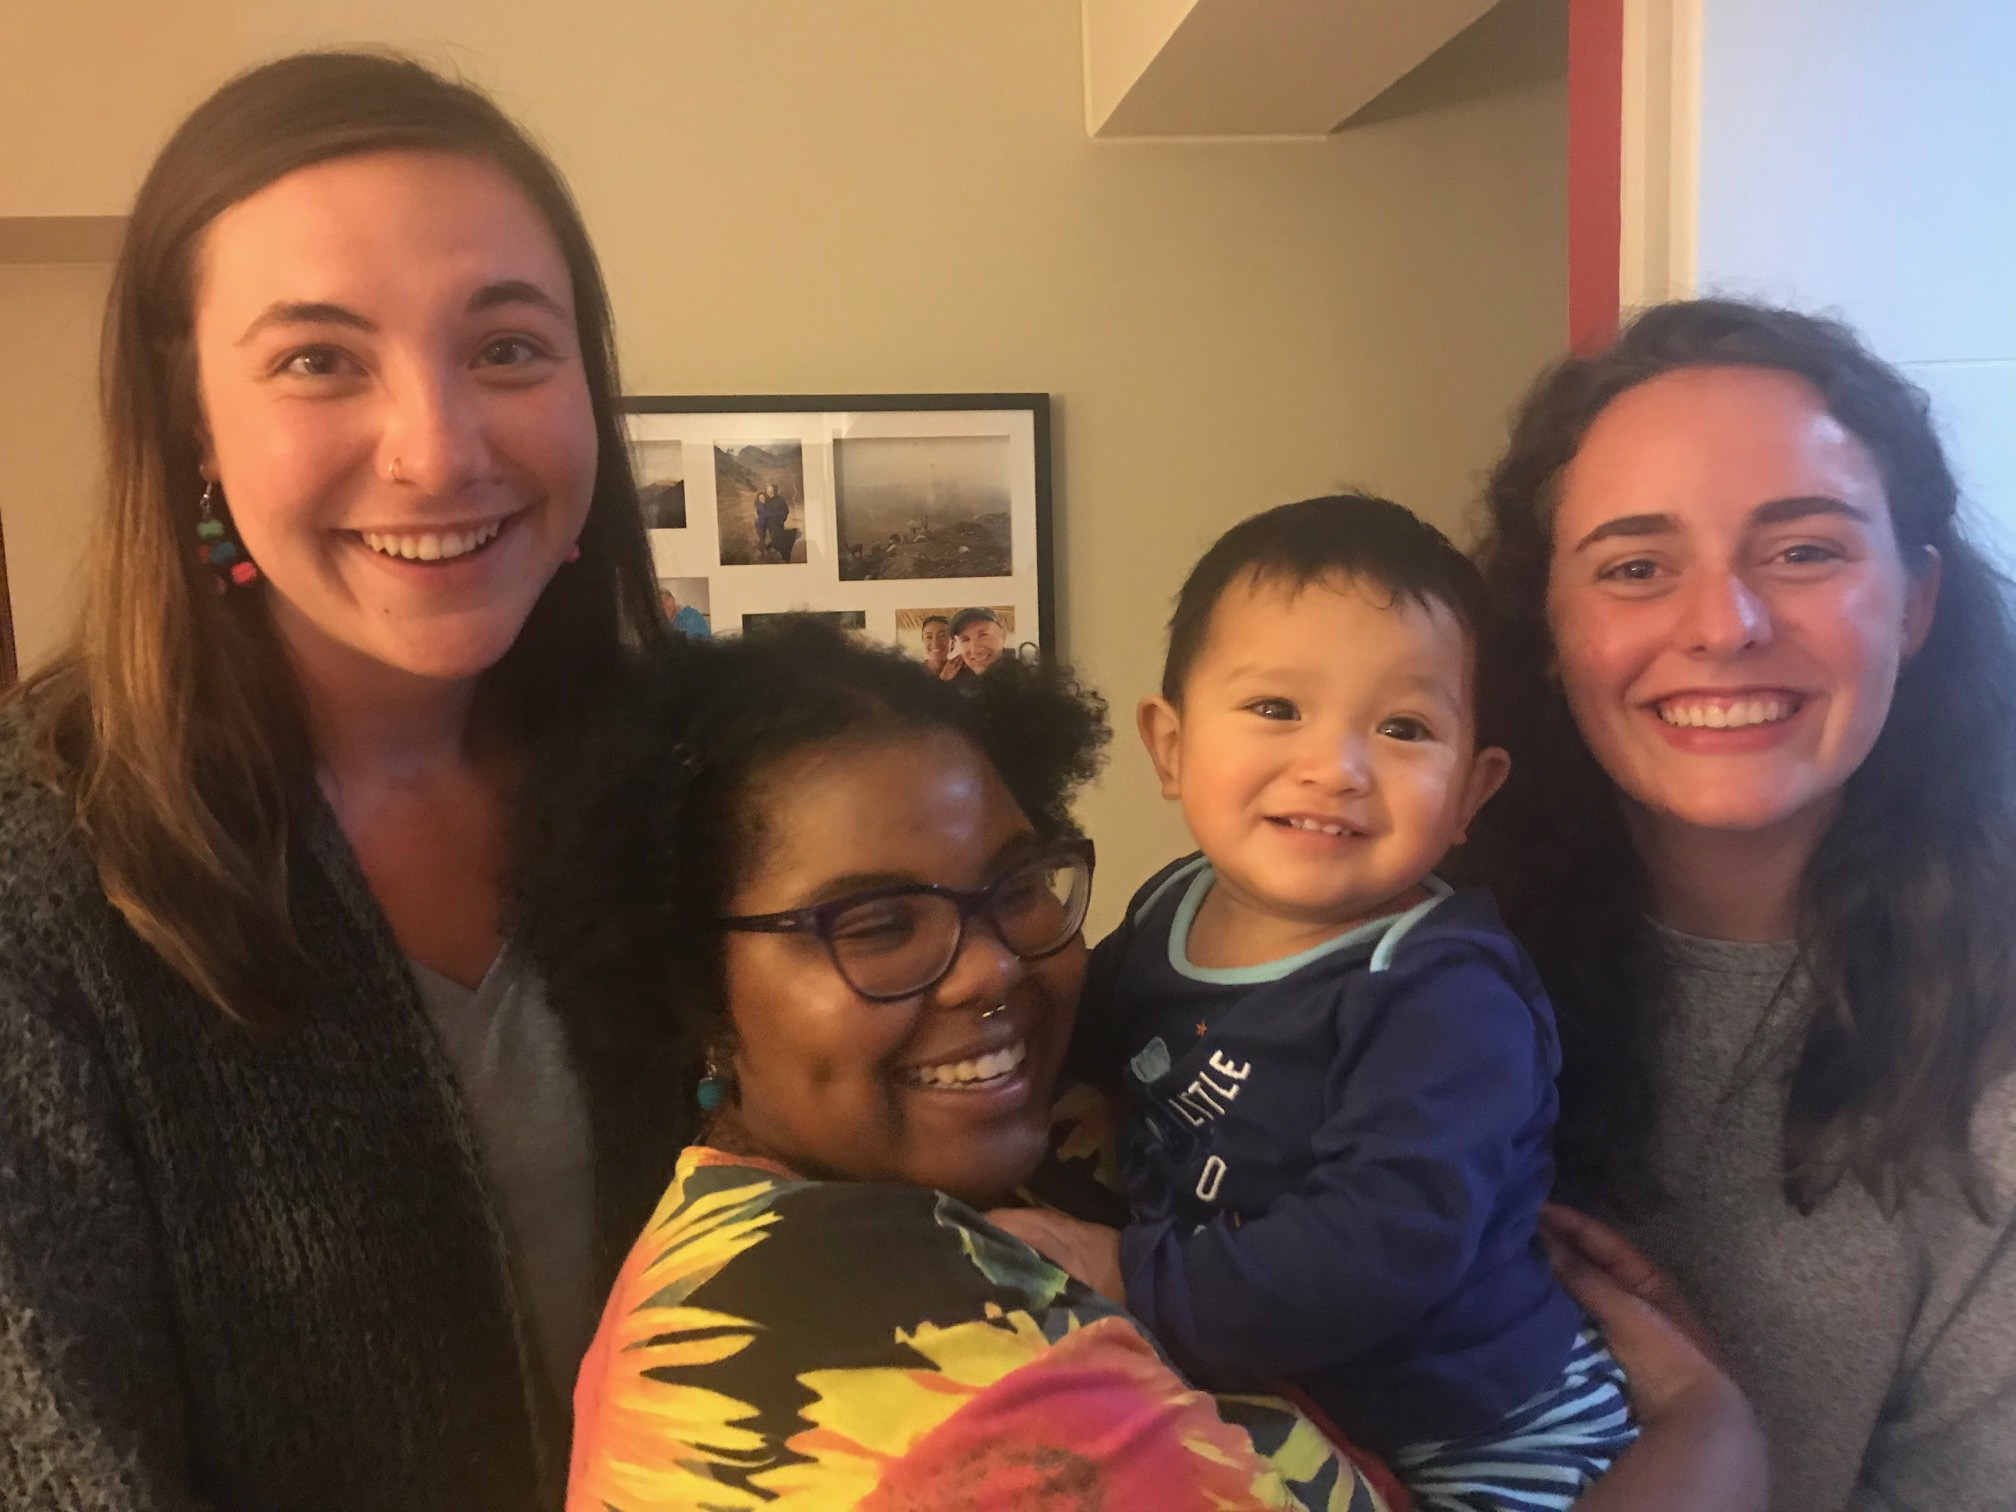 The Young Adult Volunteers have played a special role in the lives of host families as well as our family. Here three former YAVs say good-bye to our son Thiago before returning to the U.S.